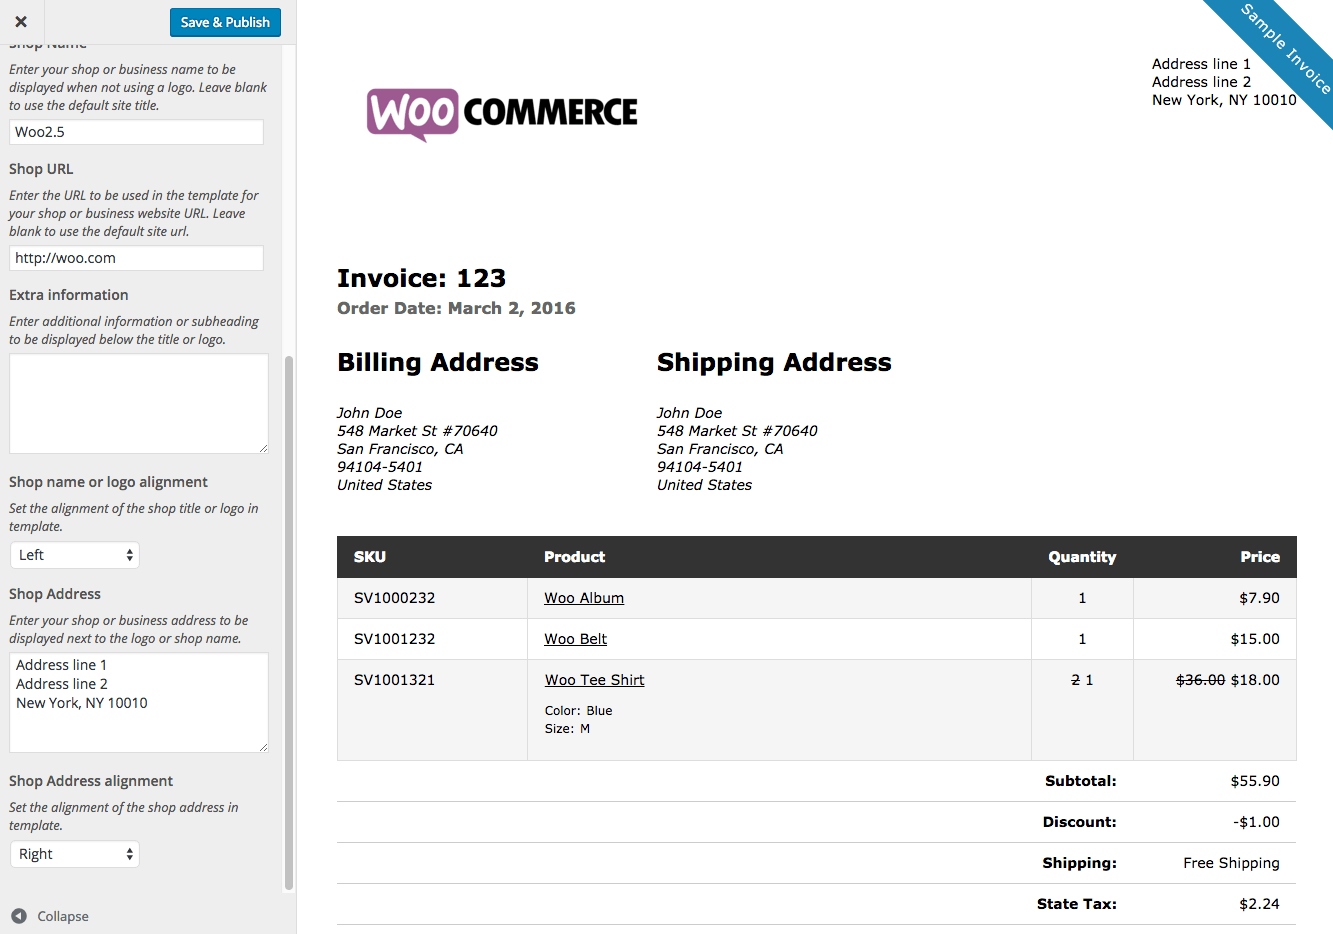 Maidofhonortoastus  Splendid Woocommerce Print Invoices Amp Packing Lists  Woocommerce Docs With Outstanding Woocommerce Print Invoices  Packing Lists Customizer With Extraordinary Supermarket Receipts Also Ice Cream Receipt In Addition Asda Receipt Guarantee And Buy Receipt Printer As Well As Down Payment Receipt Sample Additionally Cash Sale Receipt Template From Docswoocommercecom With Maidofhonortoastus  Outstanding Woocommerce Print Invoices Amp Packing Lists  Woocommerce Docs With Extraordinary Woocommerce Print Invoices  Packing Lists Customizer And Splendid Supermarket Receipts Also Ice Cream Receipt In Addition Asda Receipt Guarantee From Docswoocommercecom